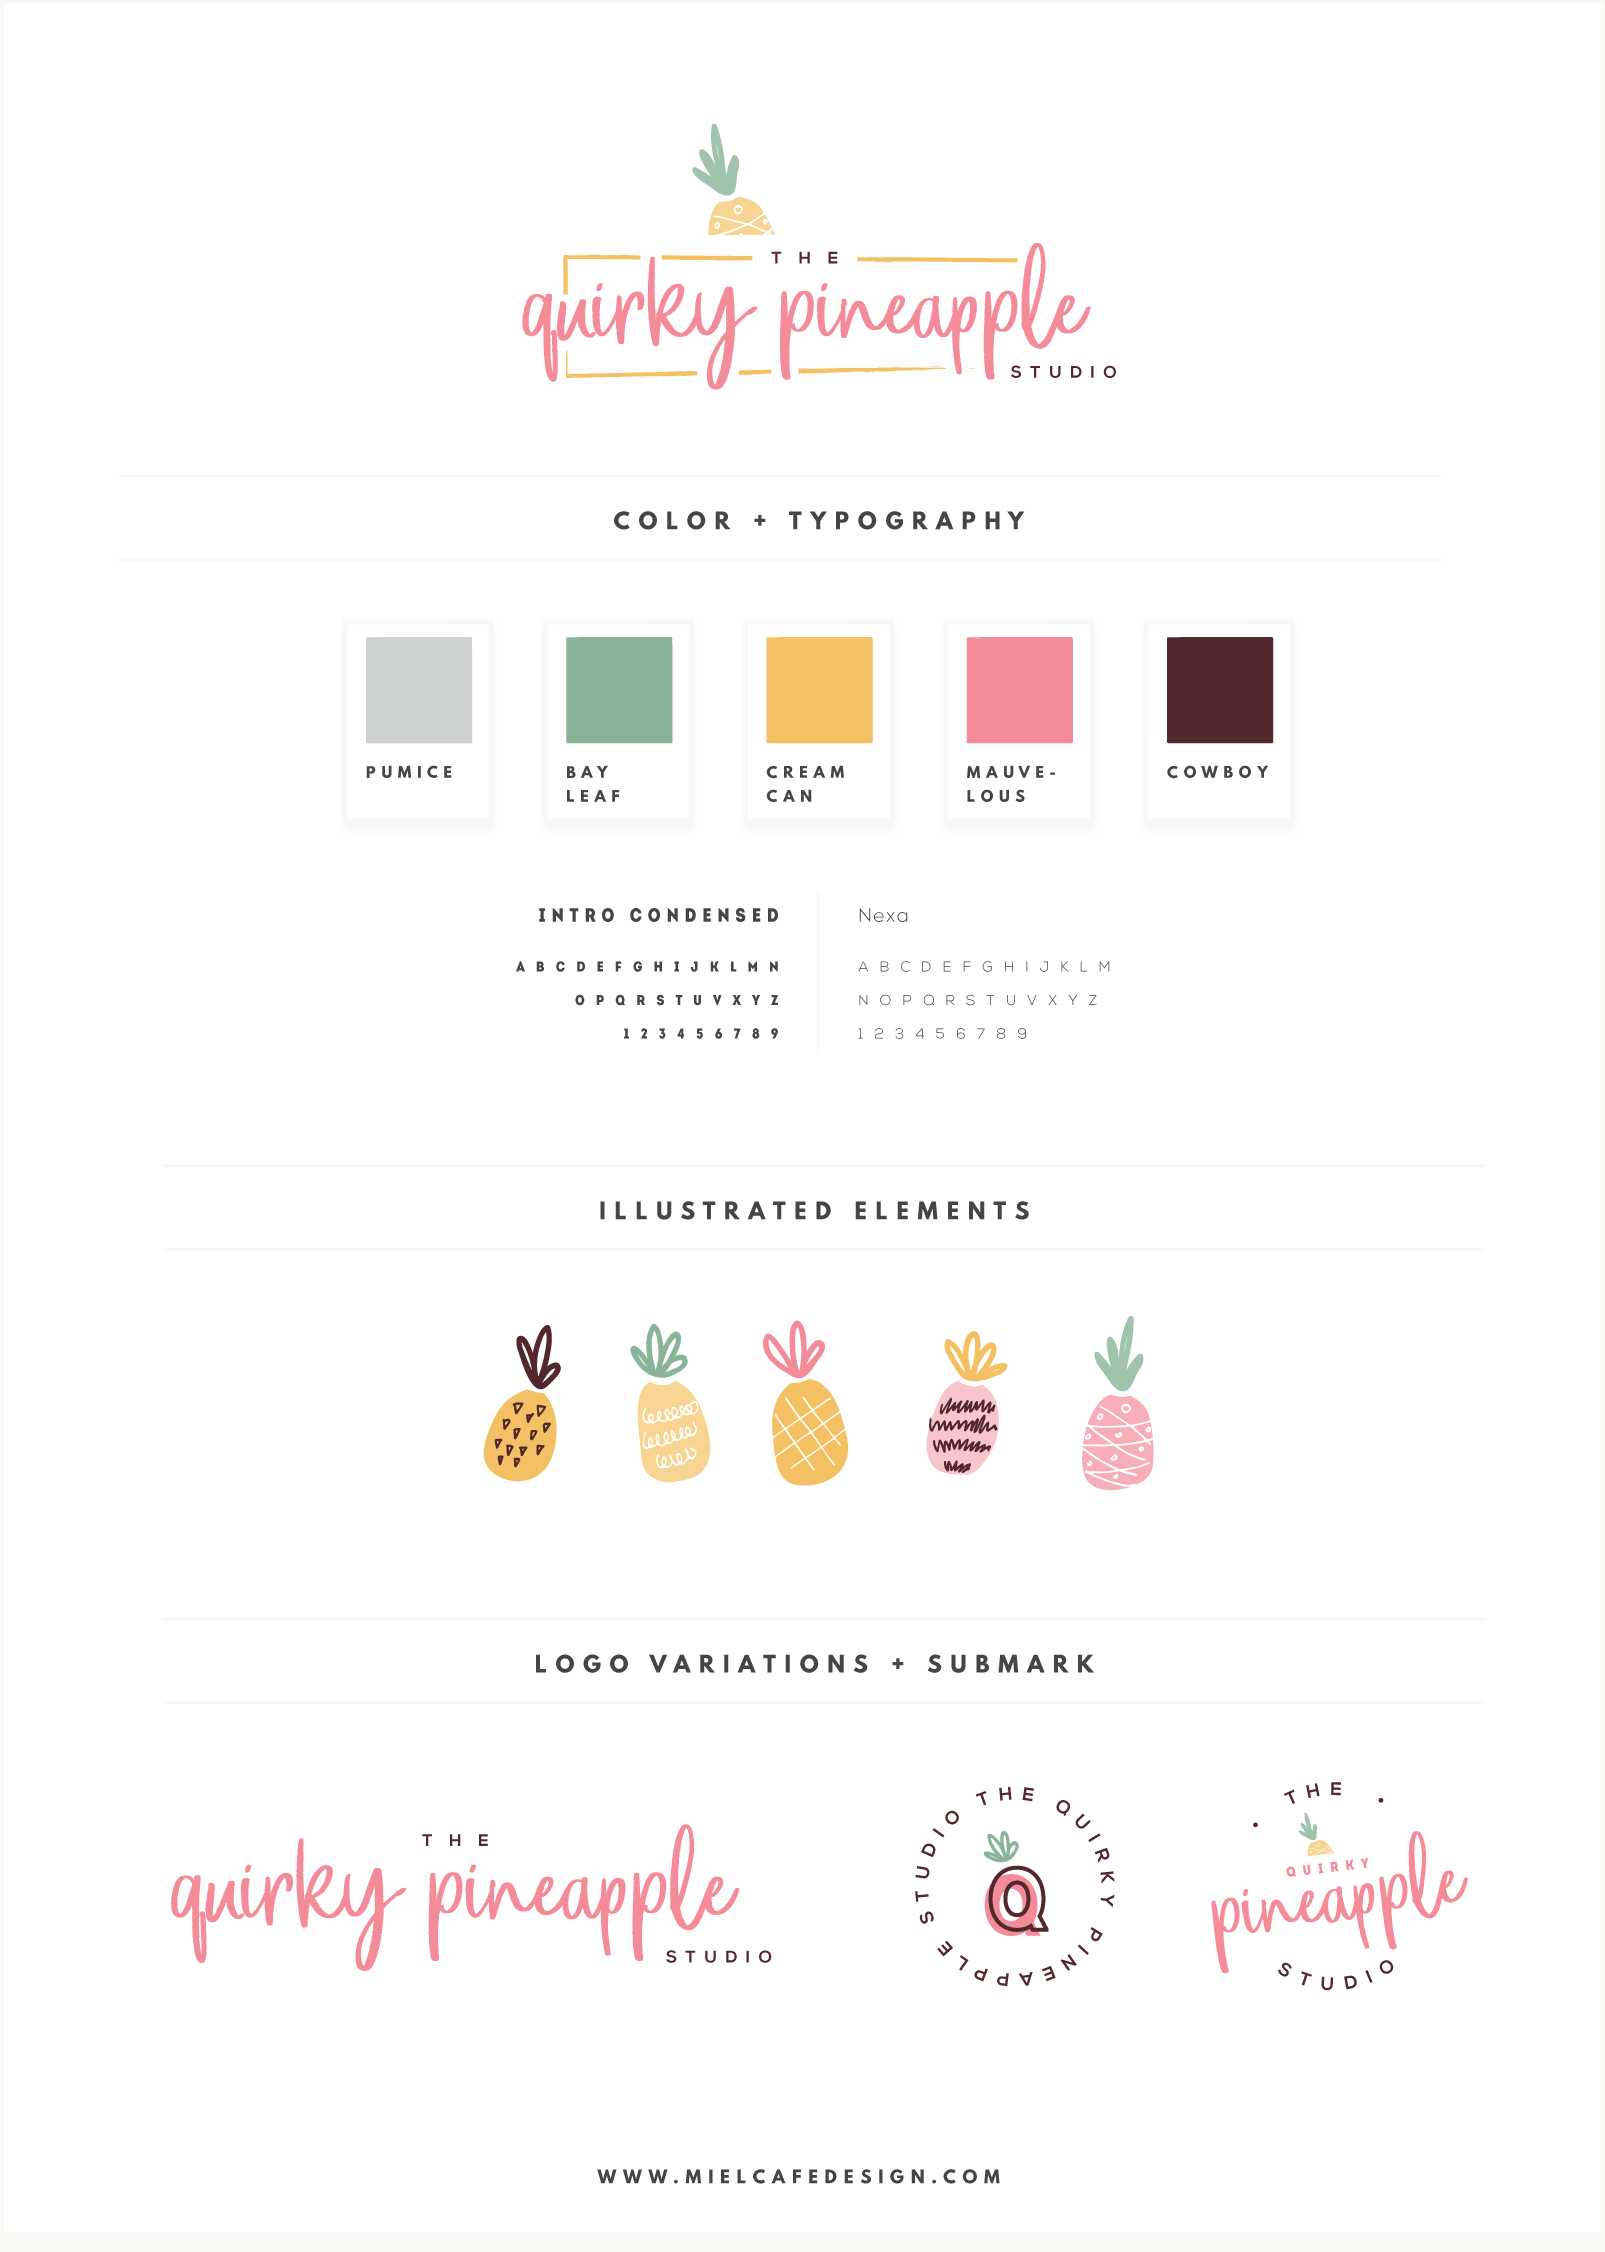 Branding & Website for Storyteller The Quirky Pineapple Studio Final Brand Board